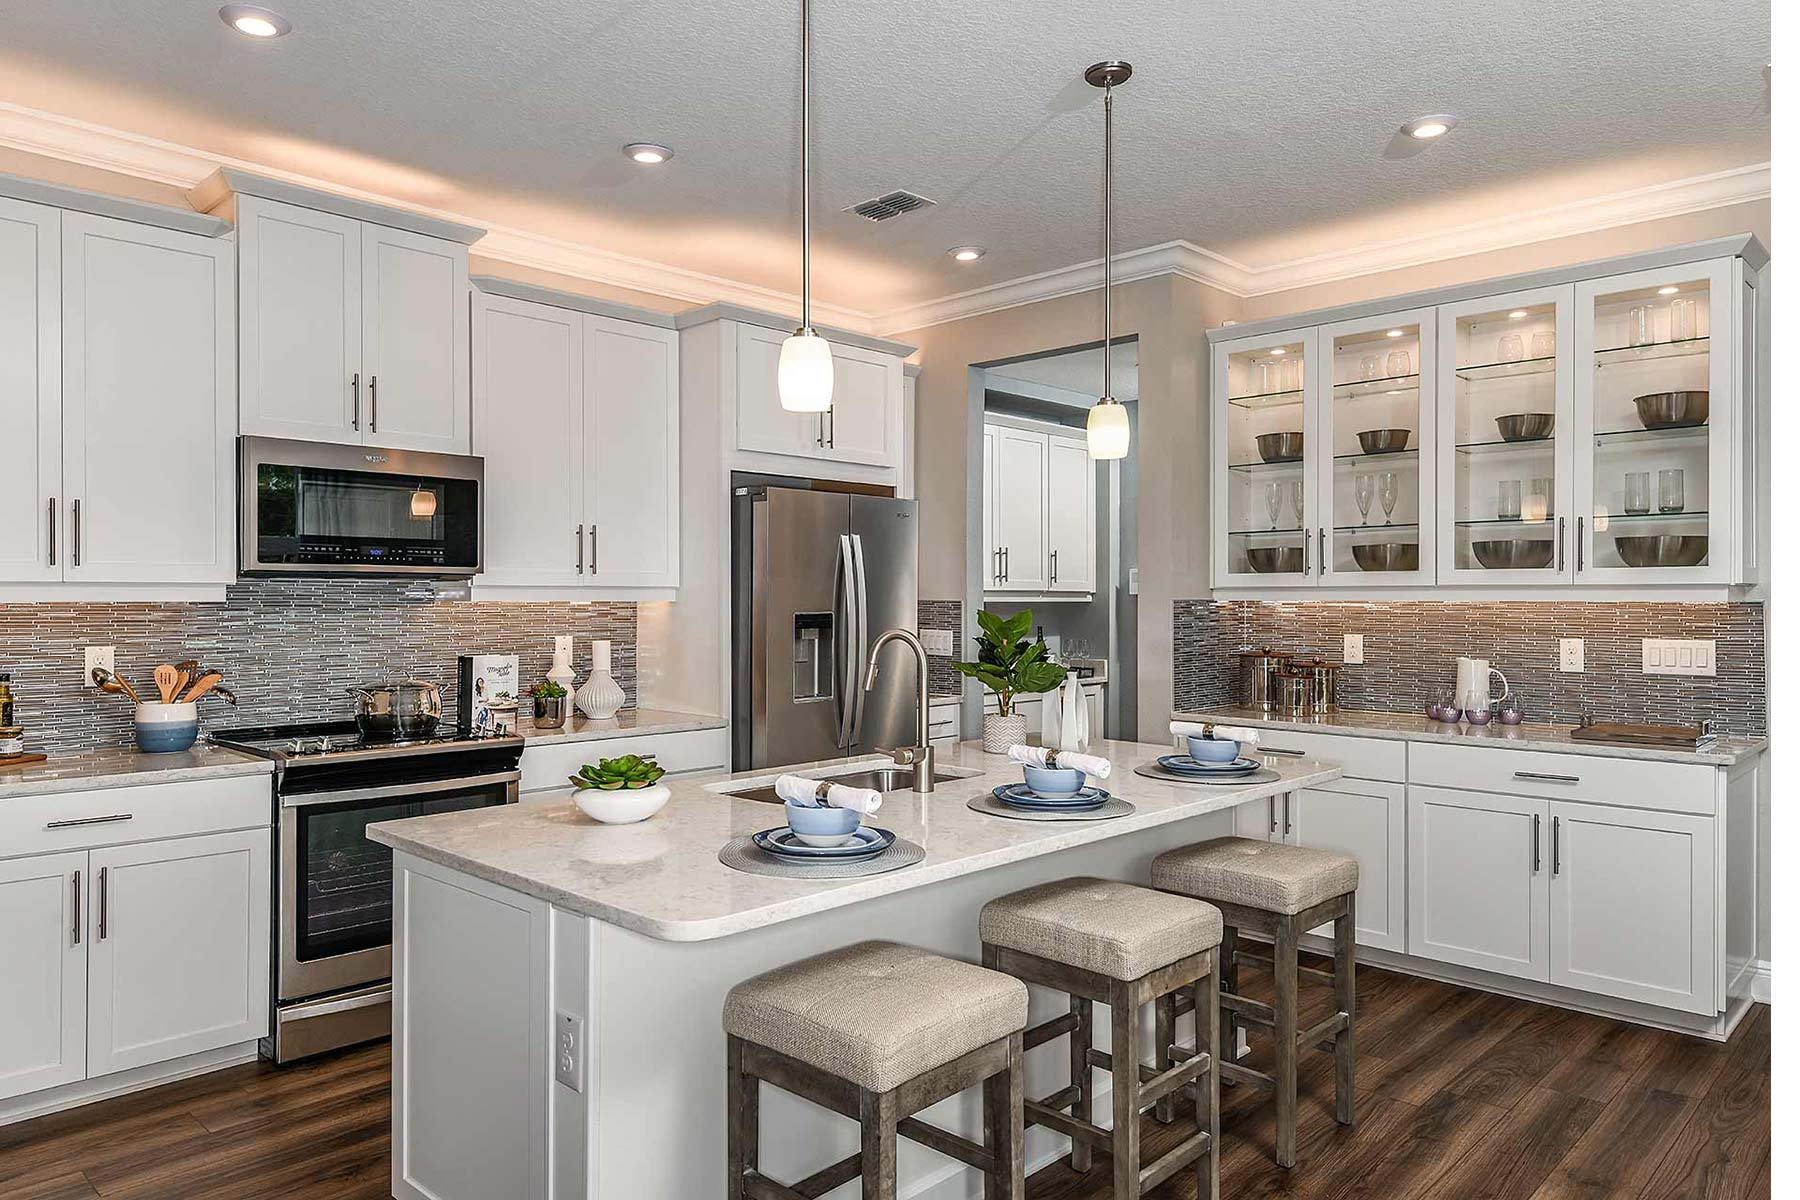 Venice Plan Kitchen at Avea Pointe in Lutz Florida by Mattamy Homes